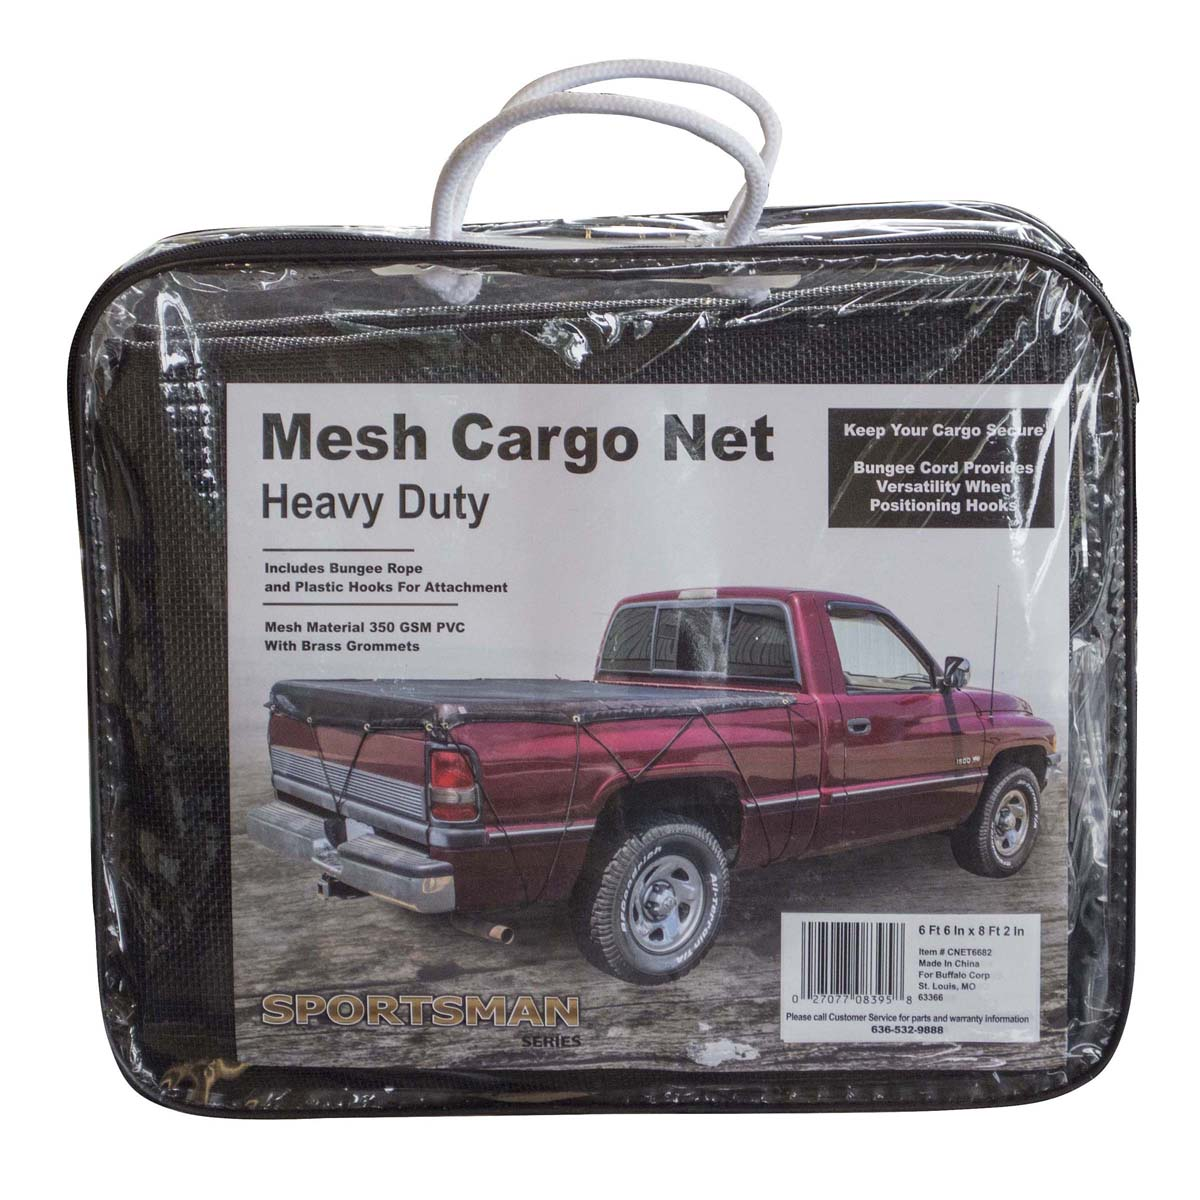 Heavy Duty Mesh Truck Bed Cargo Net Cover 6 ft. 6 in. x 8 ft. 2 in.